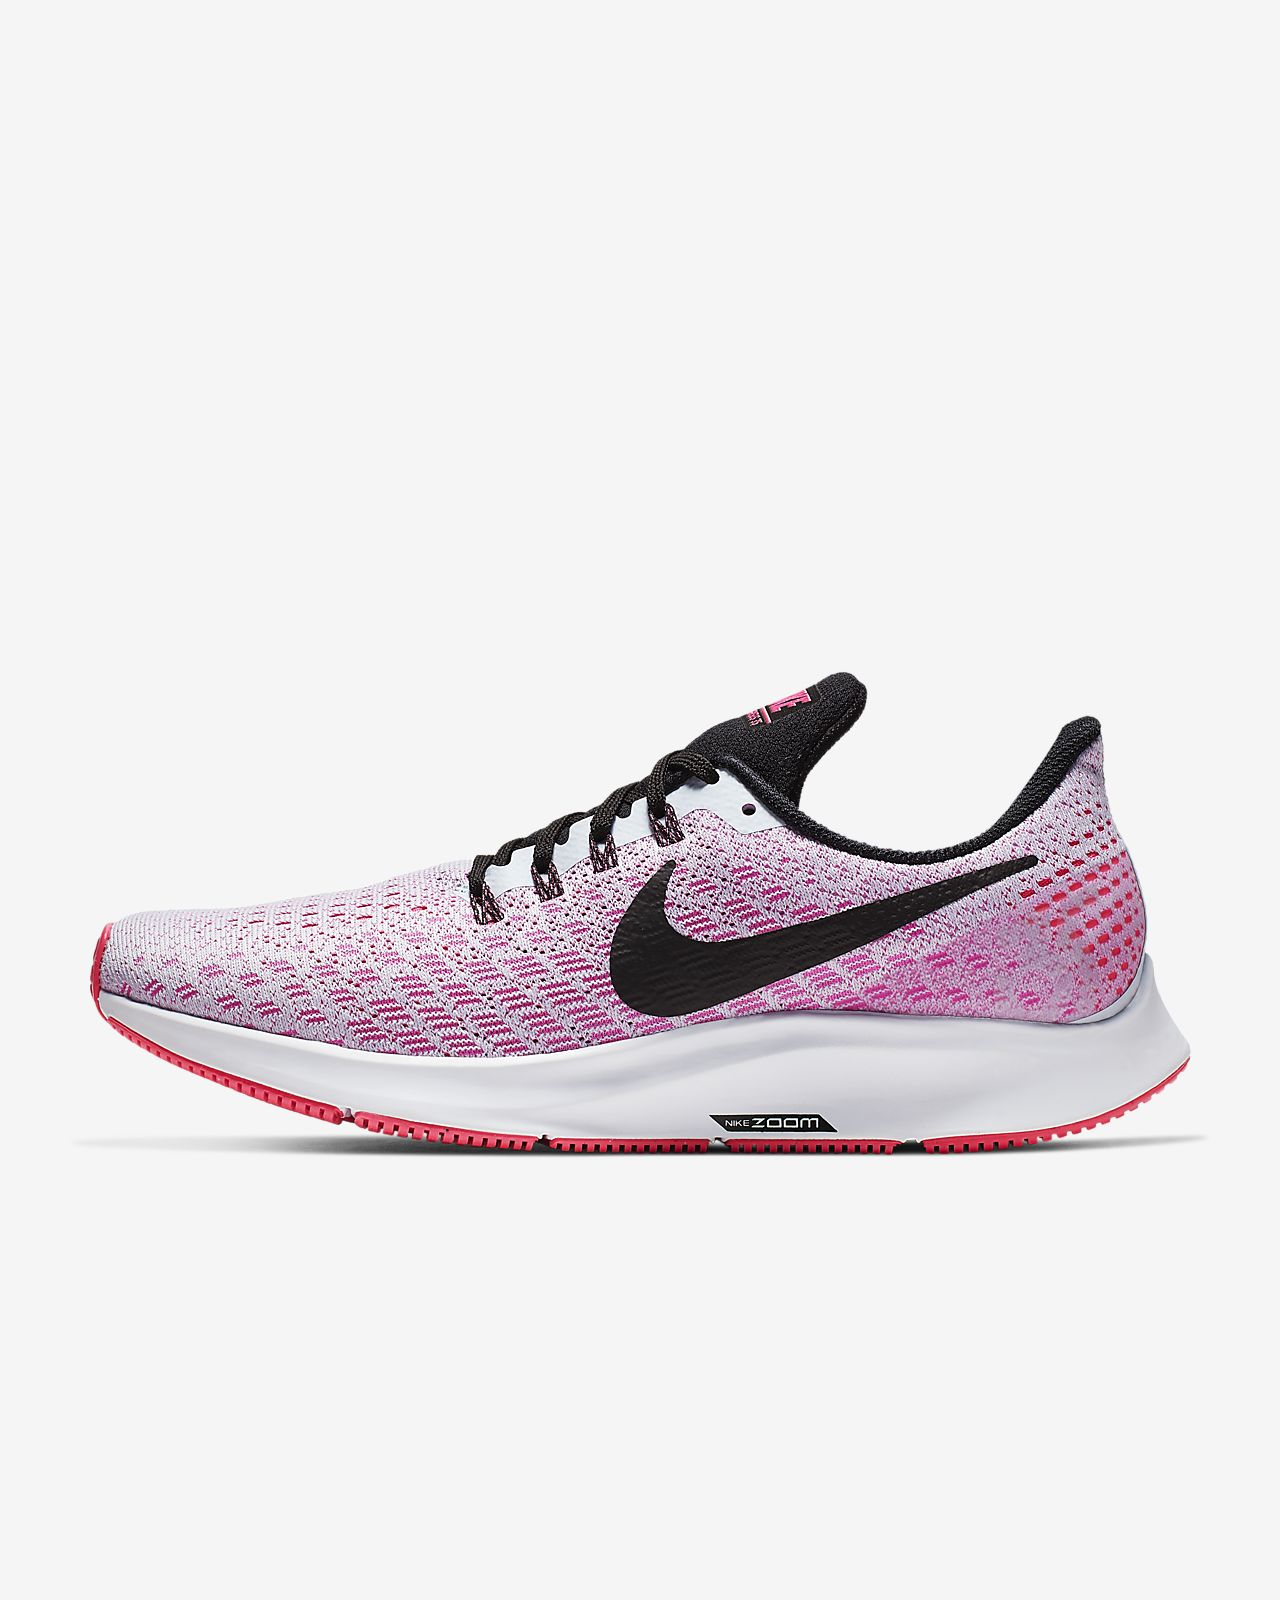 db5242307ba27 Nike Air Zoom Pegasus 35 Women s Running Shoe. Nike.com